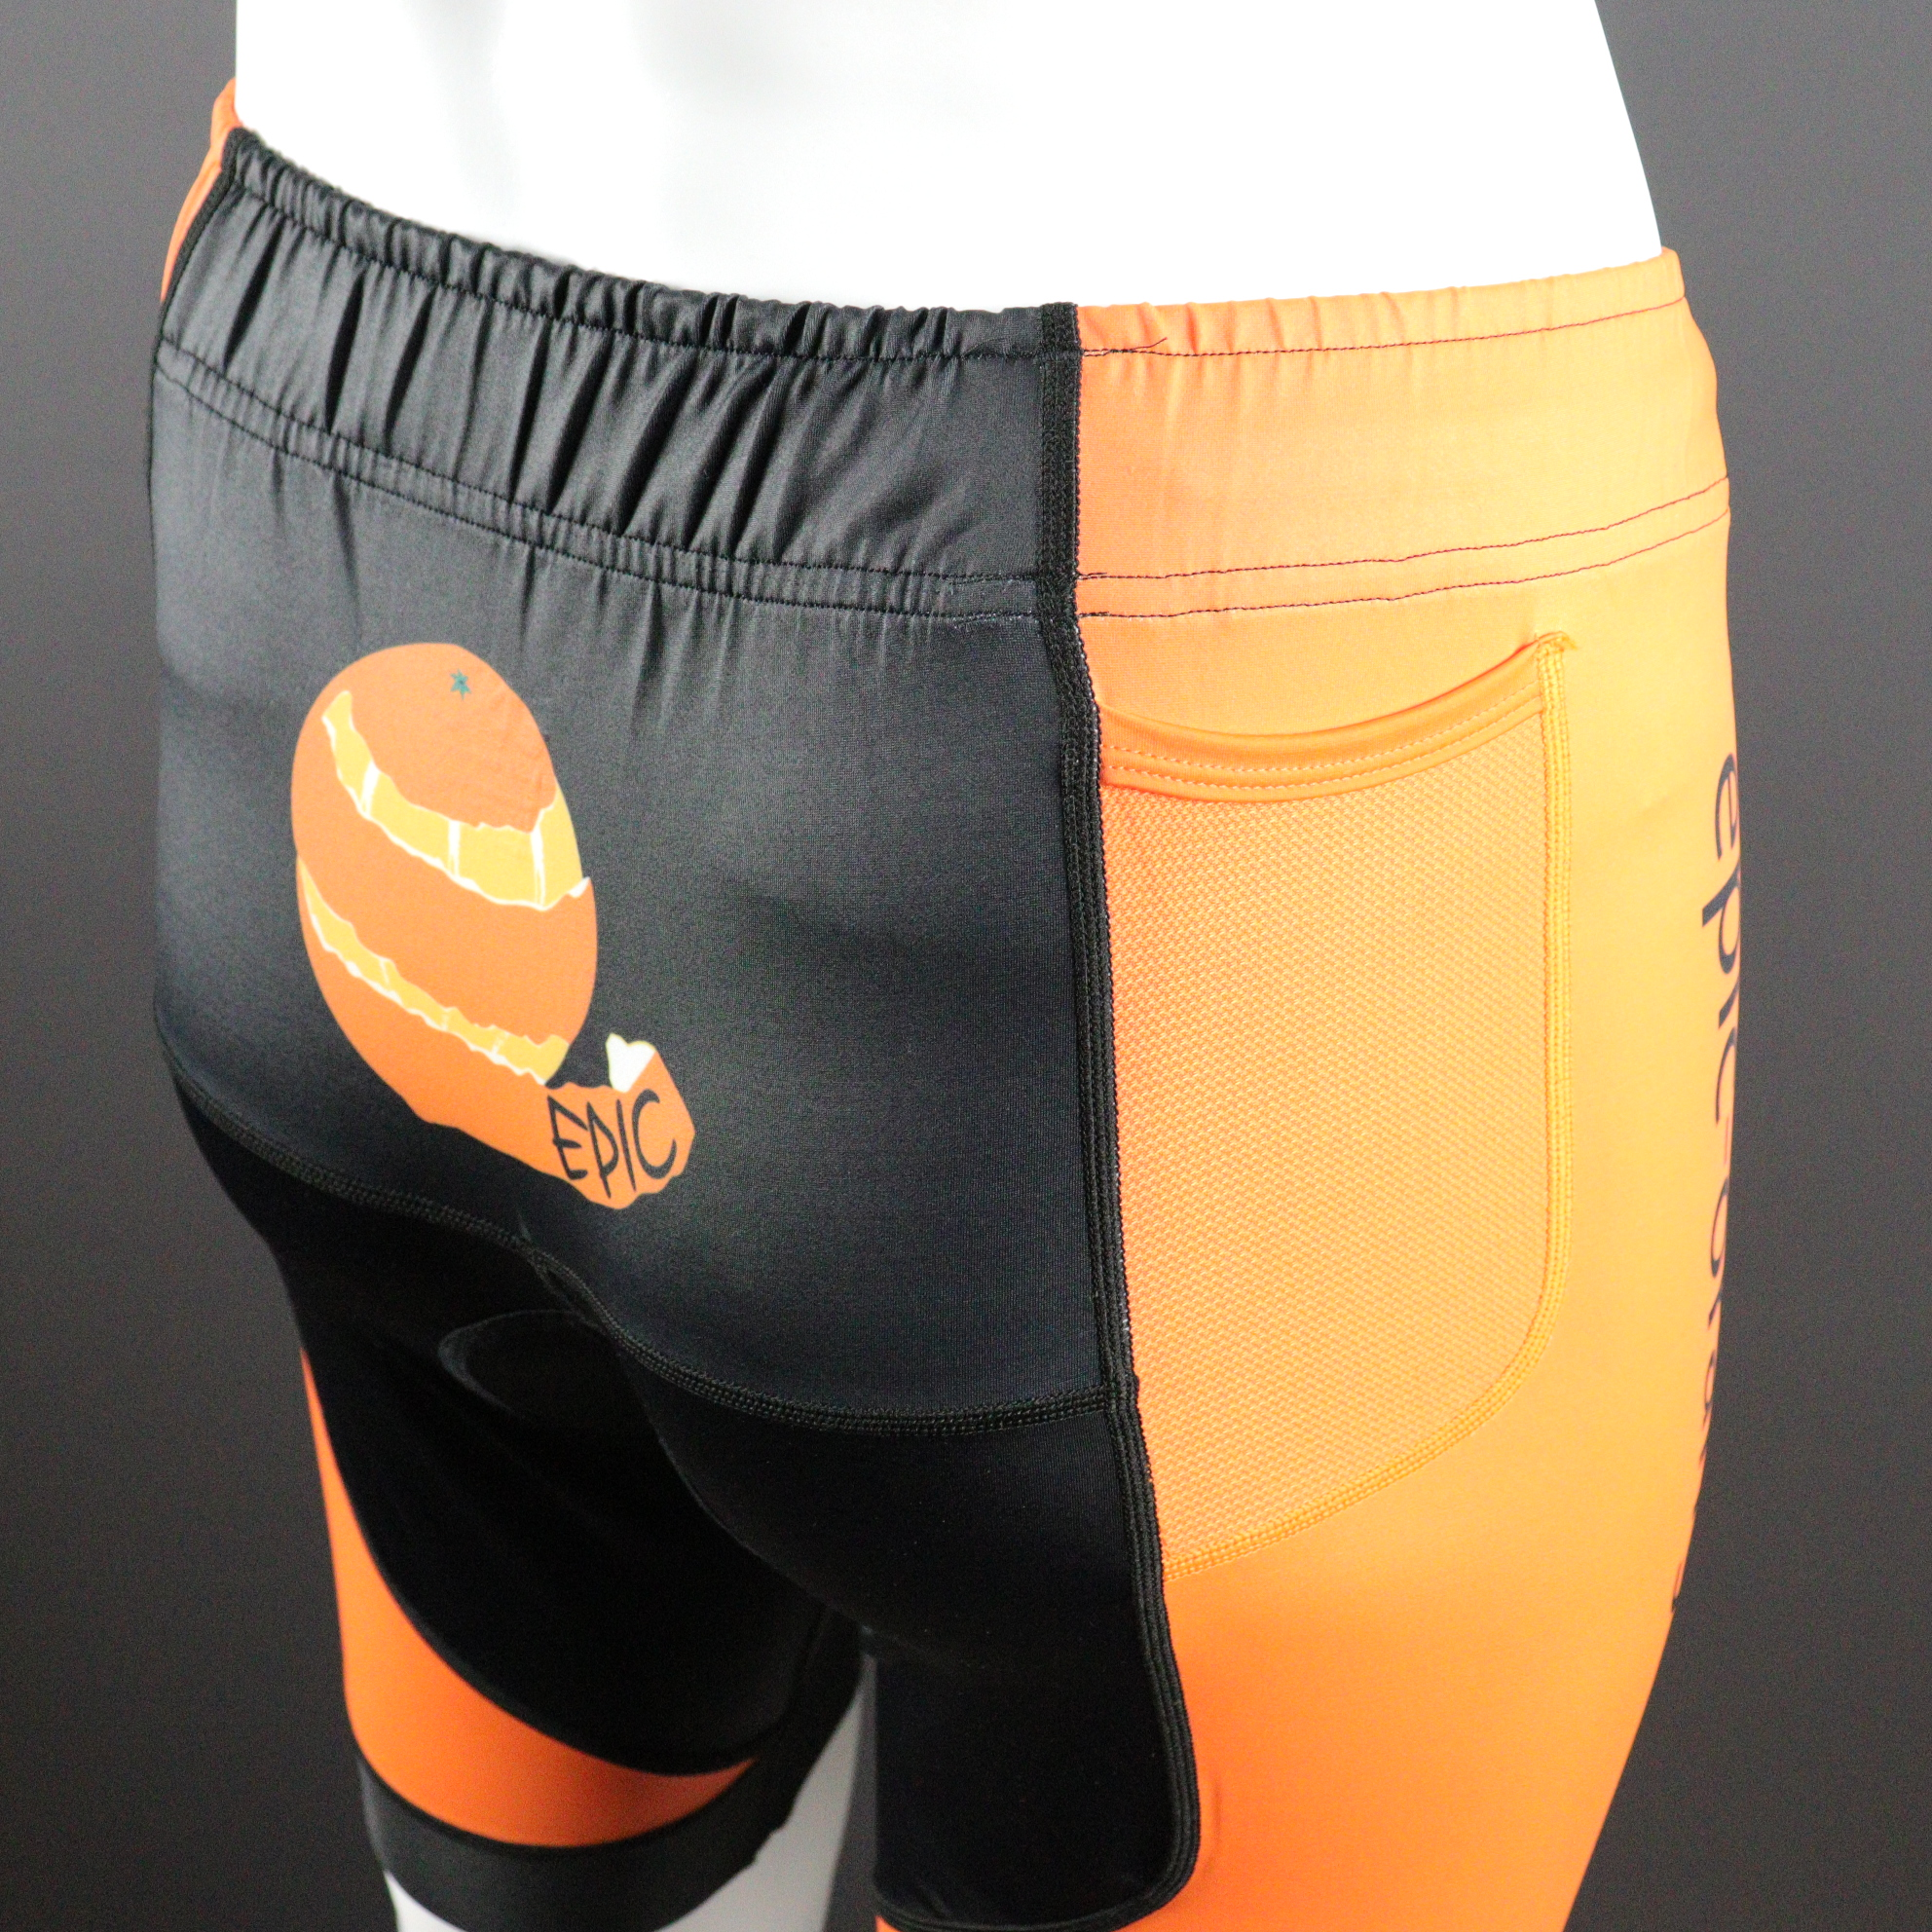 Endurance Tri Shorts - Elasticated waistline